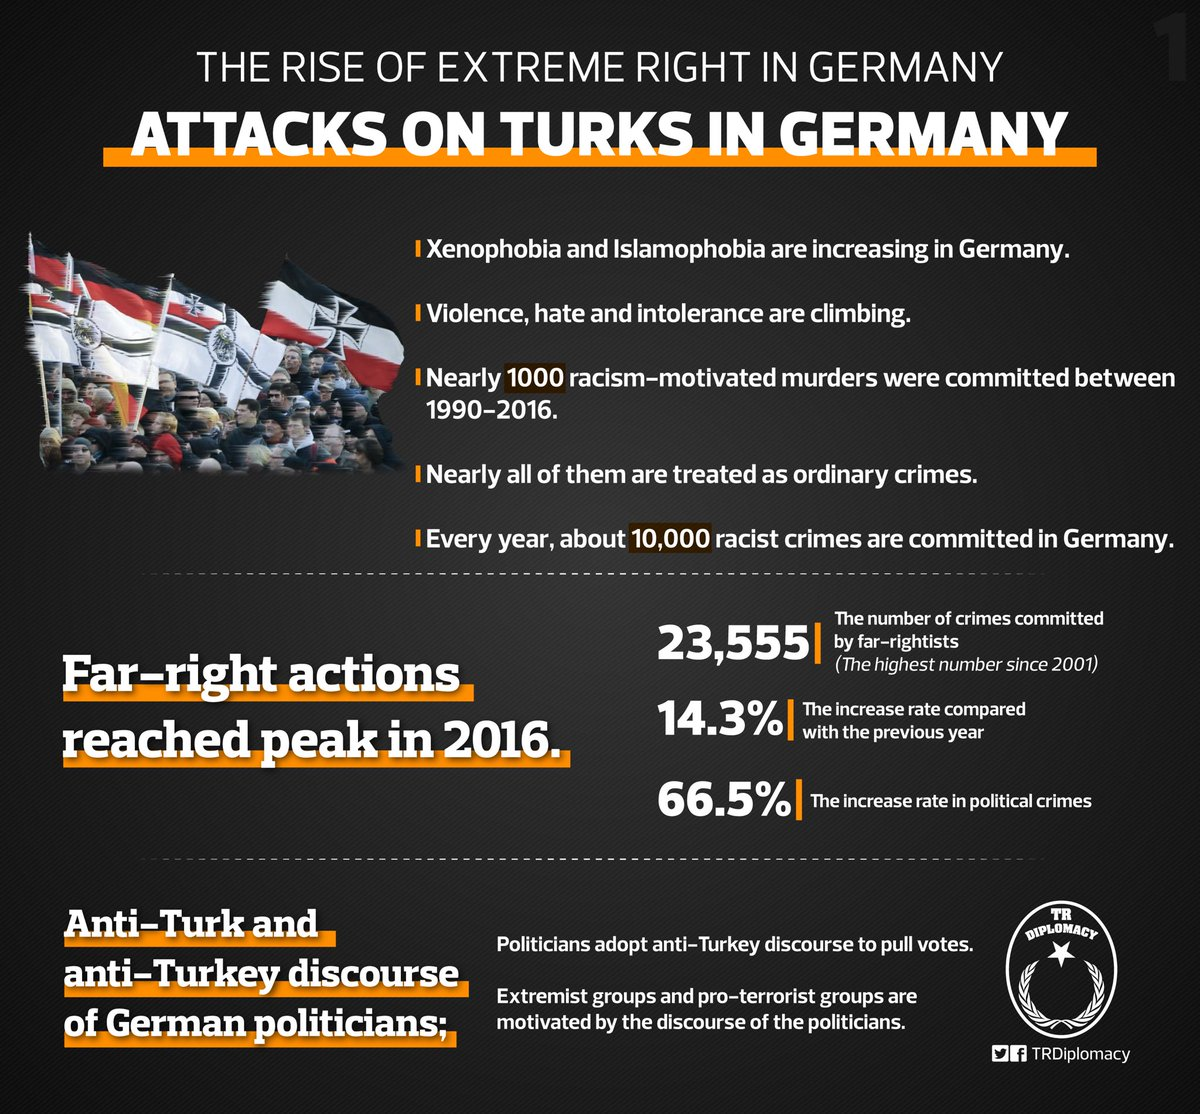 Increasing far-right movement and attacks on Turks in Germany